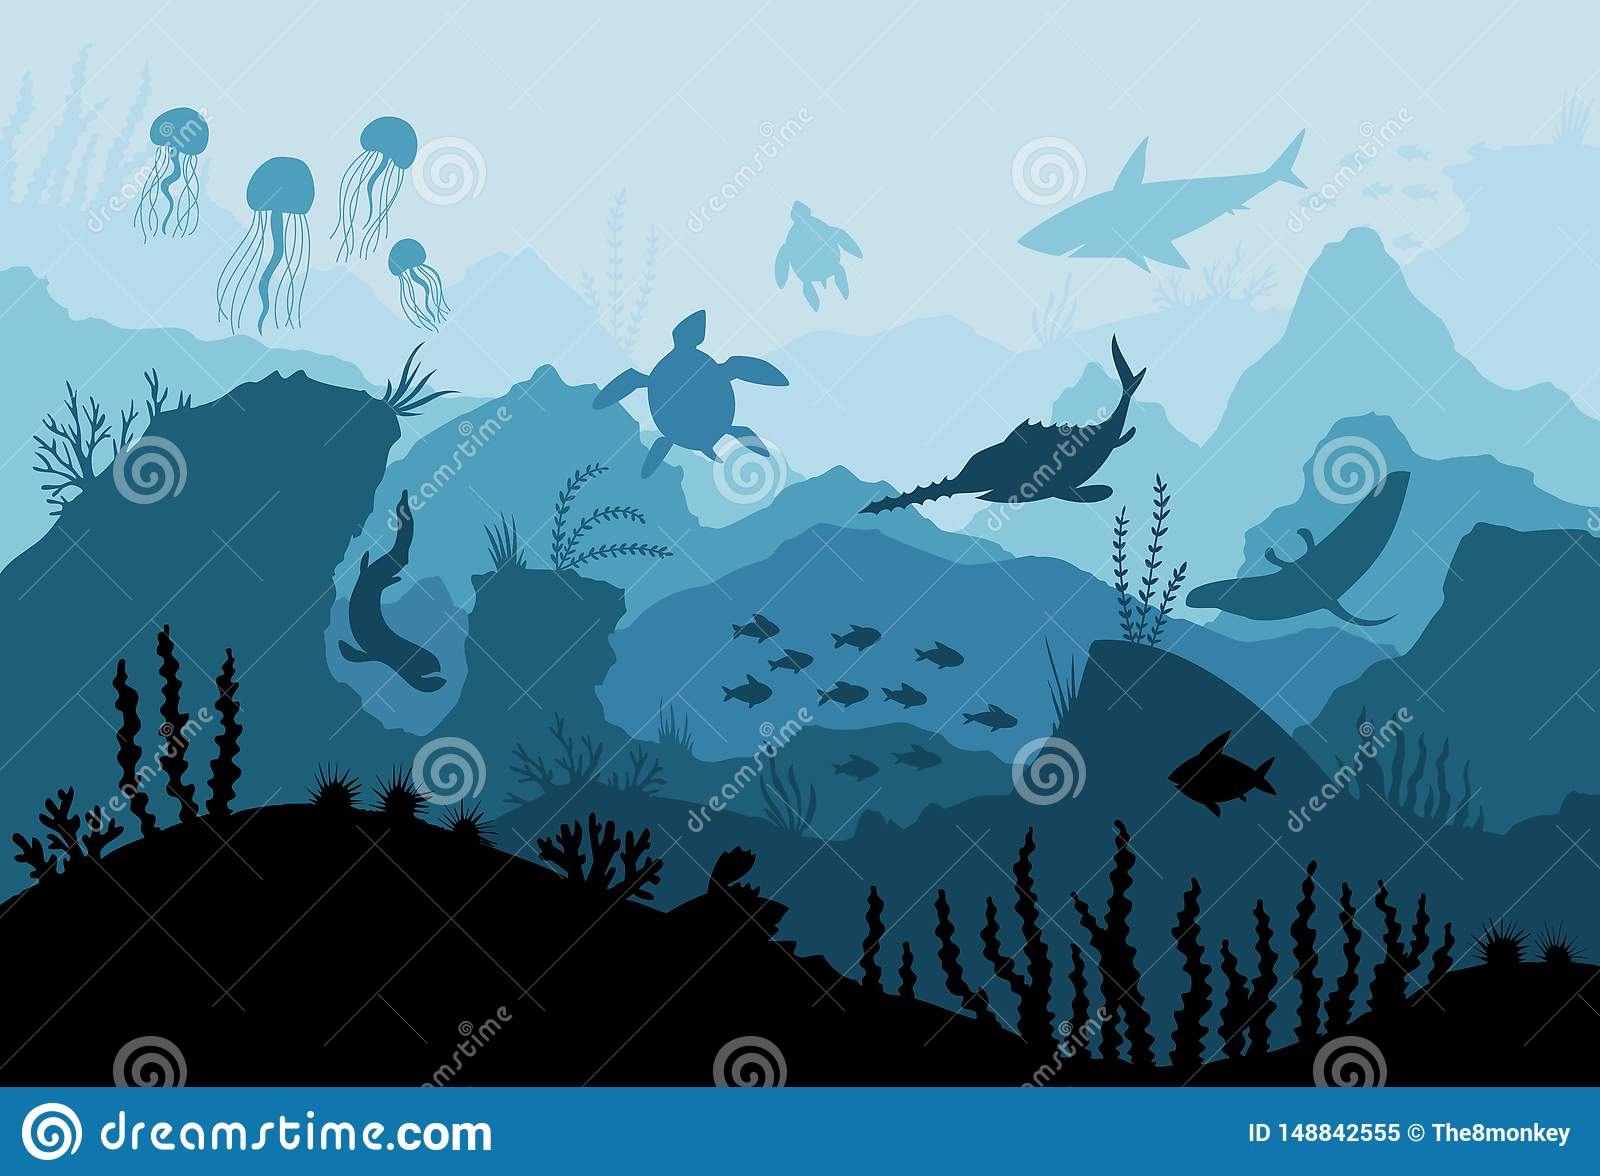 Underwater ocean fauna. Deep sea plants, fishes and animals. Marine seaweed, fish under water and animal silhouette with